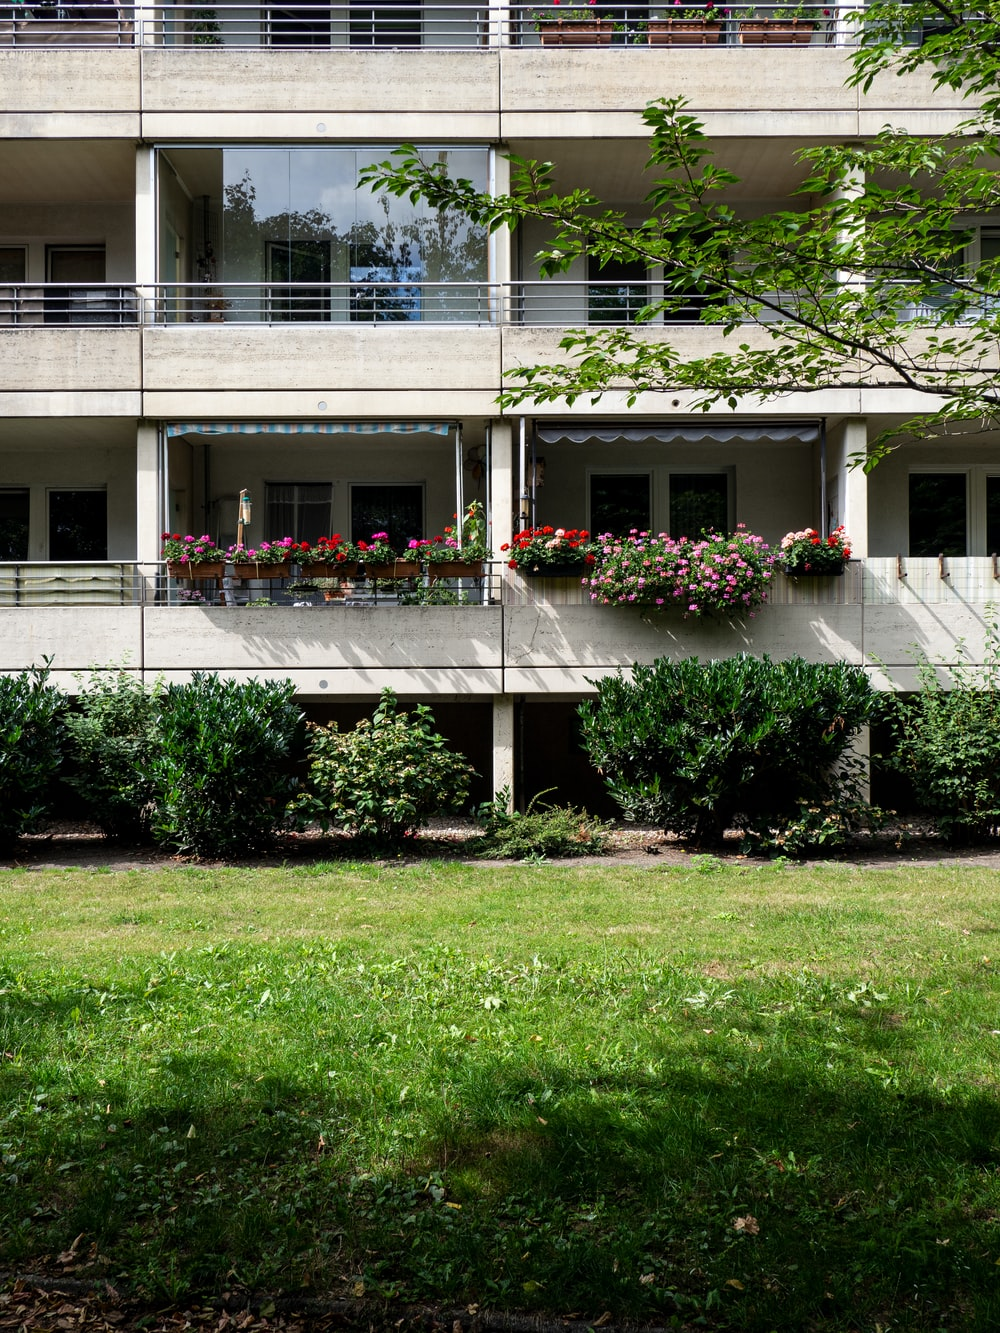 white concrete building with green grass lawn